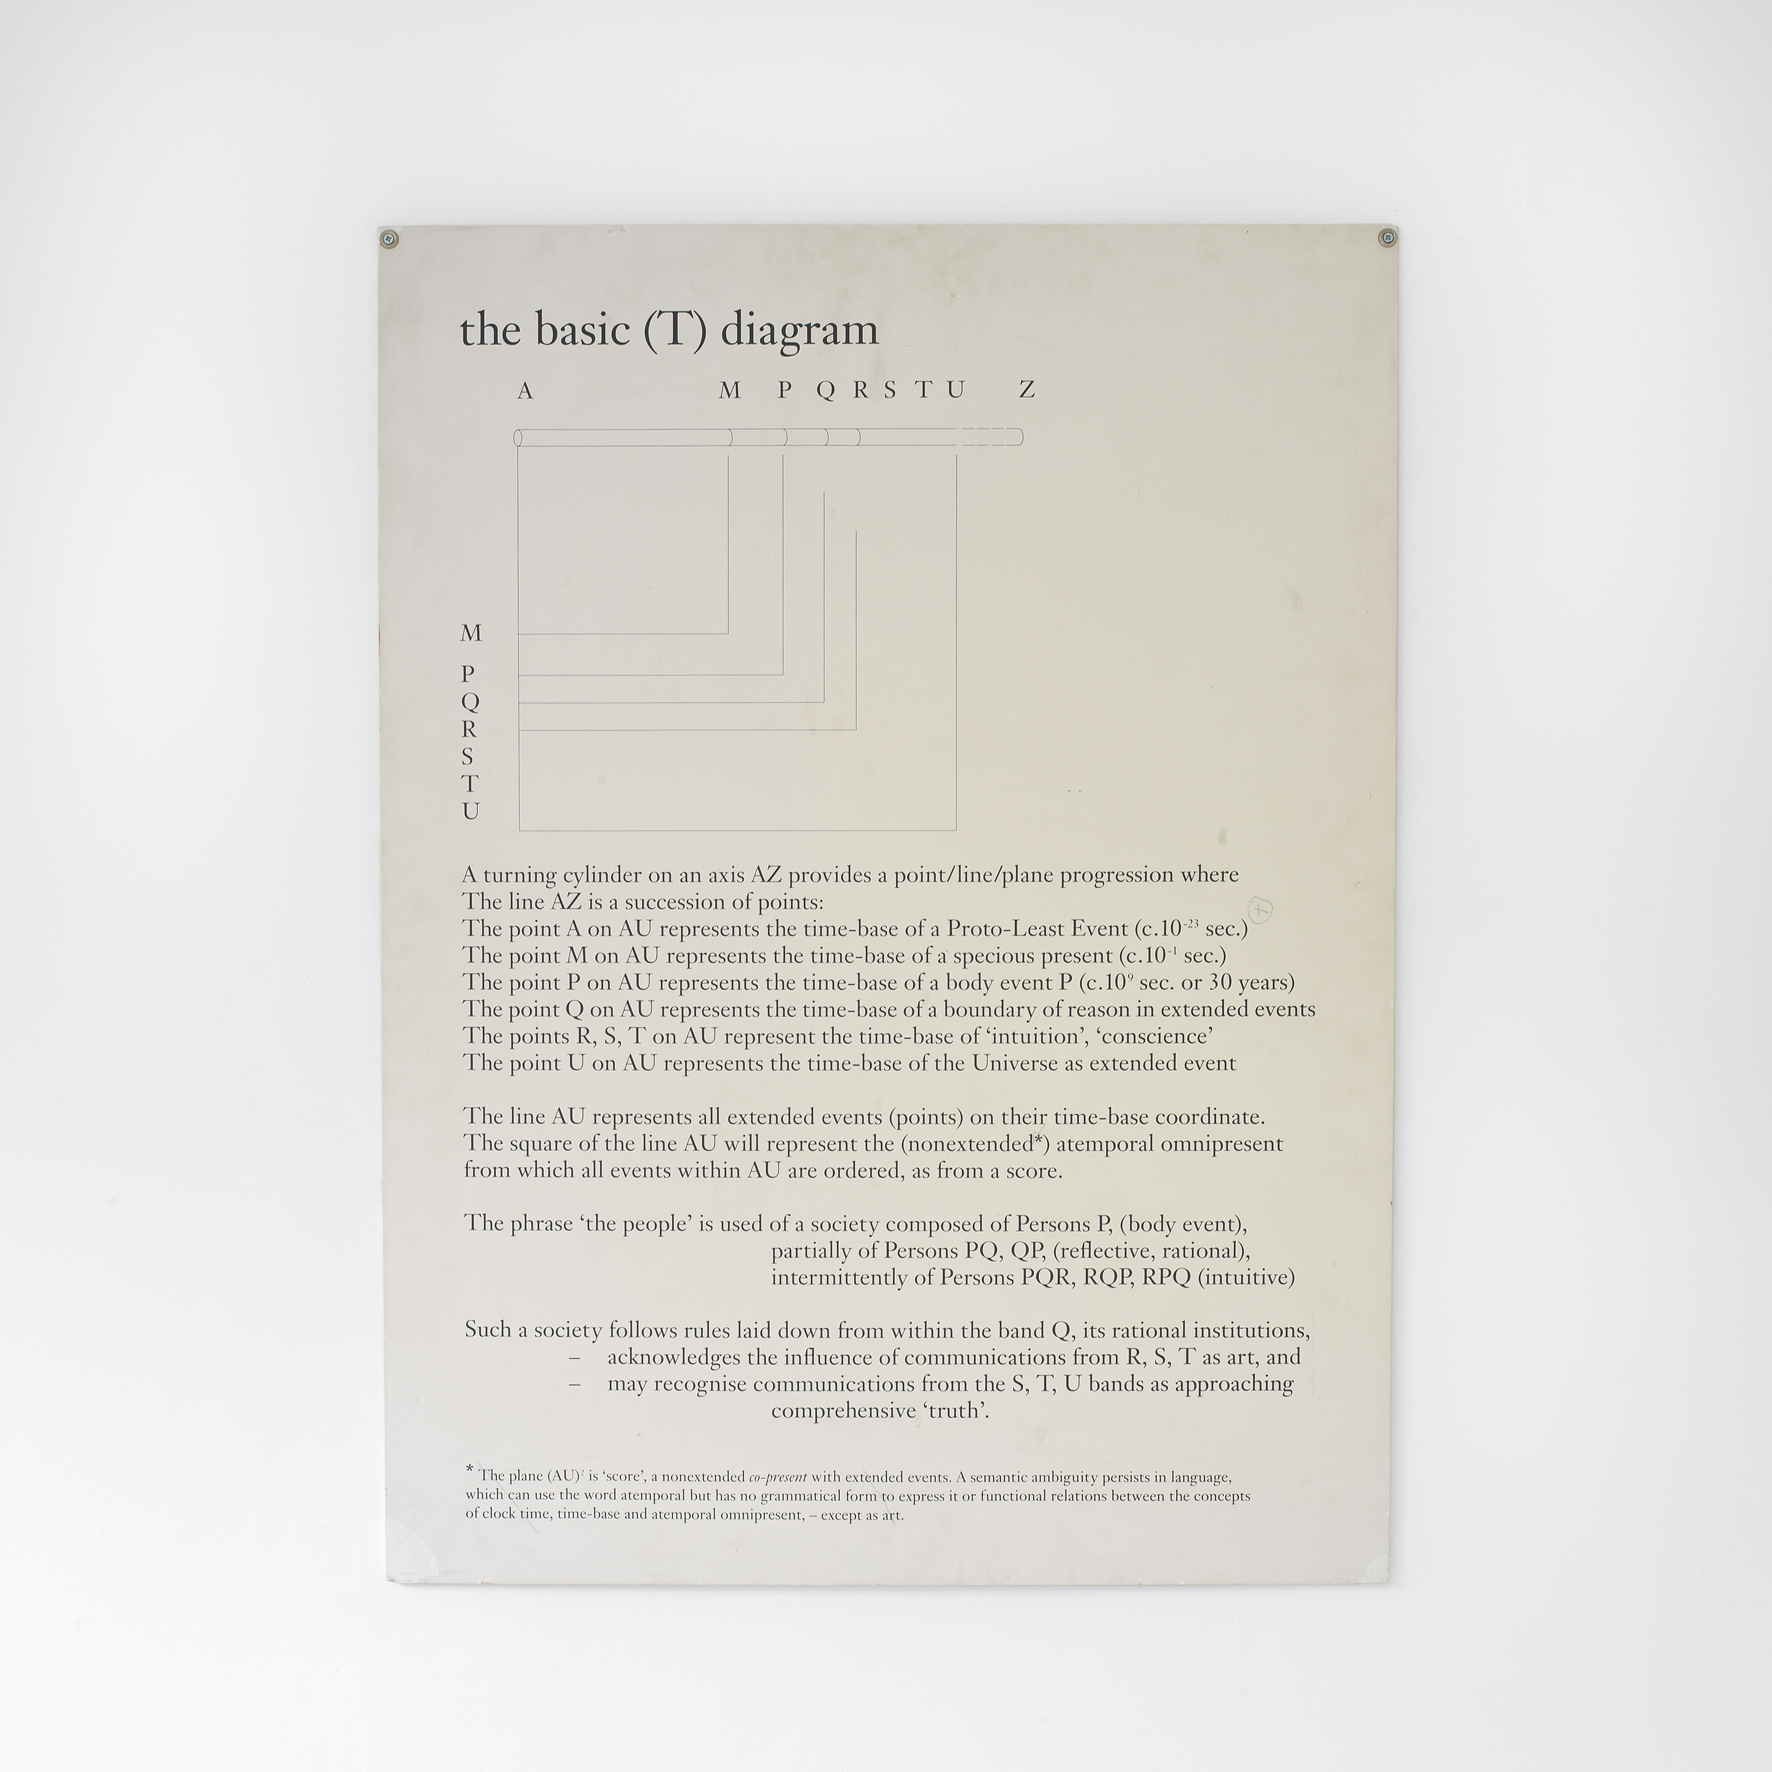 The Basic T Diagram (1991) Text on hardboard, Photo: Ken Adlard (FTHo open by appointment  2)